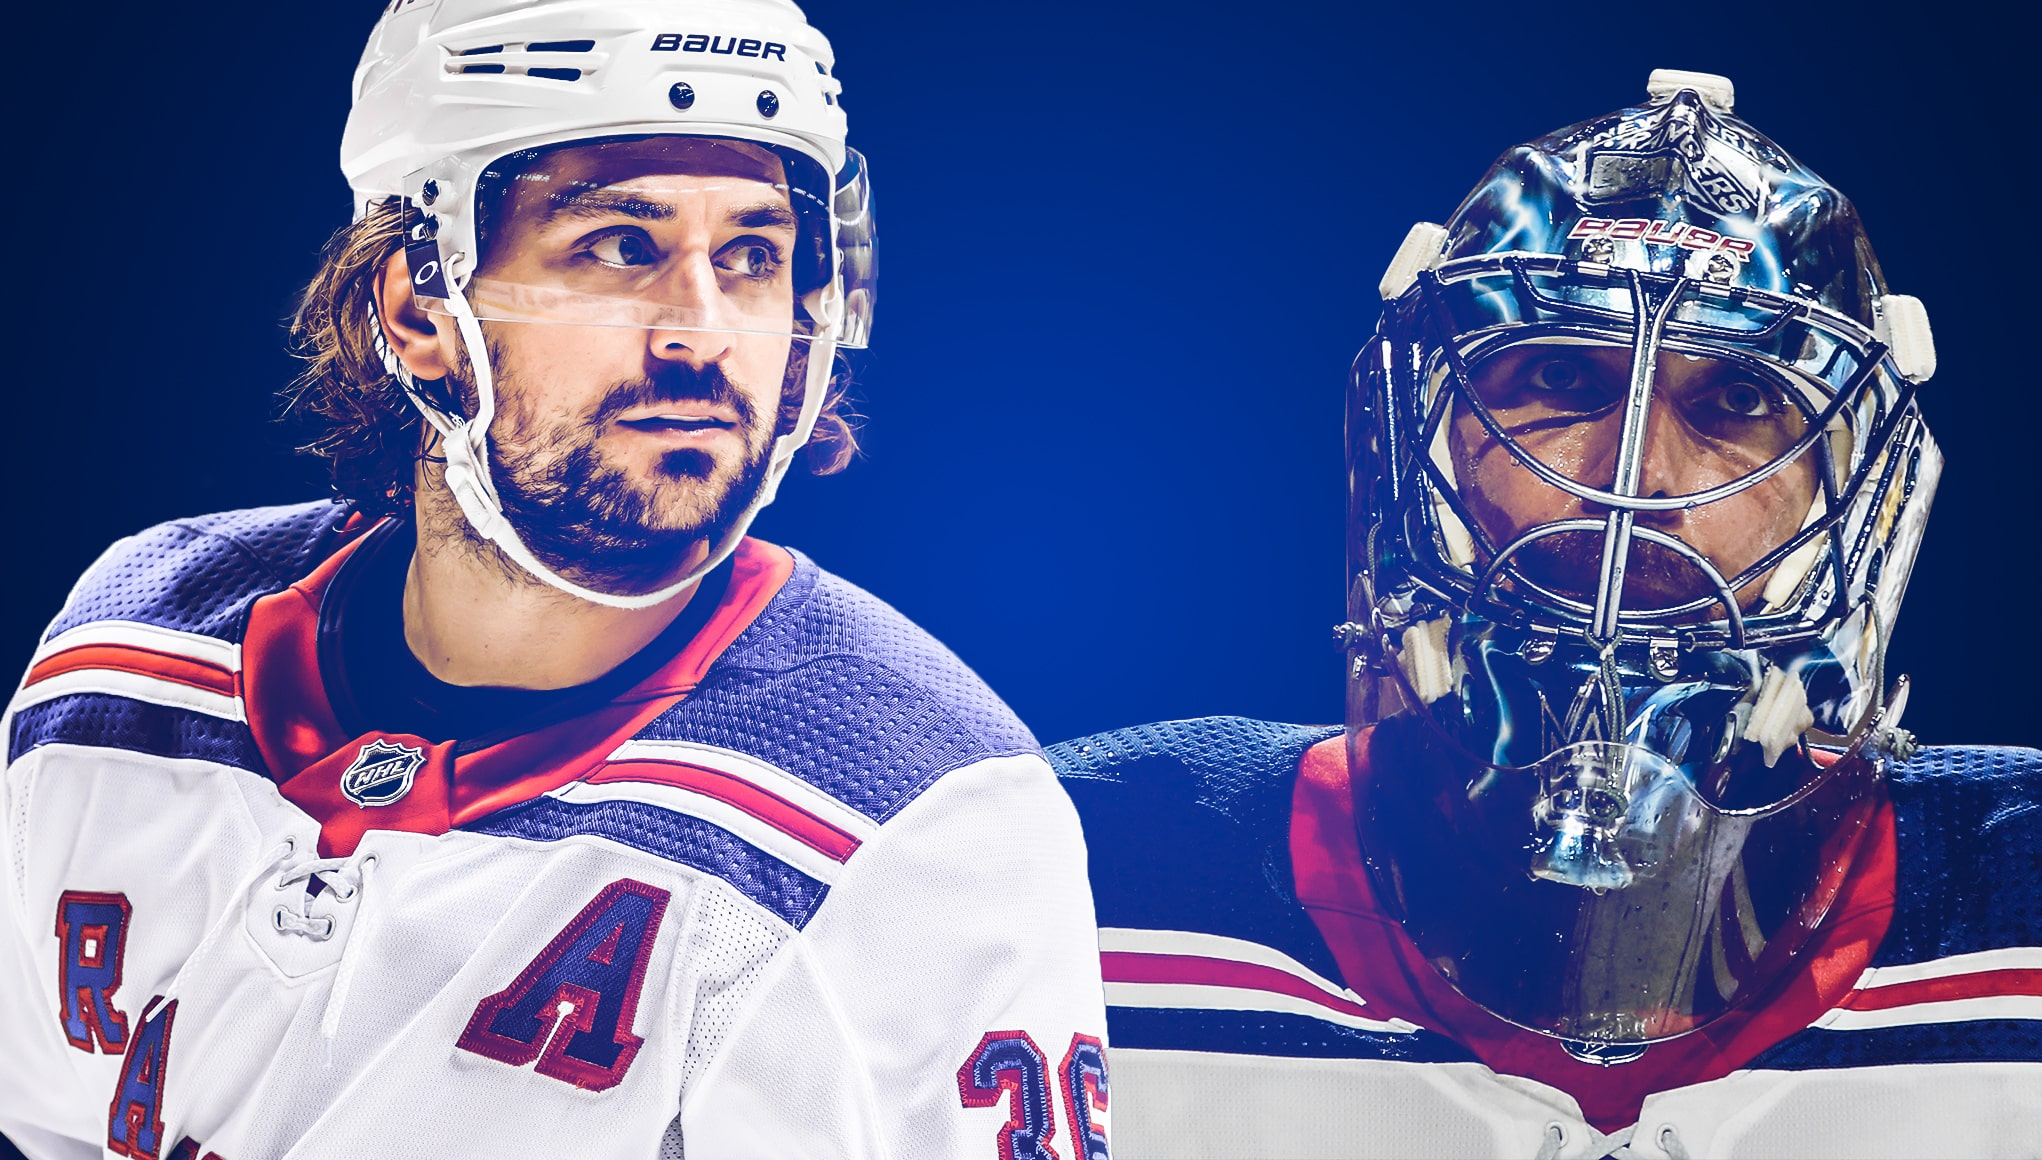 Henrik Lundqvist Mats Zuccarello Reminisce On Msg Connections Video